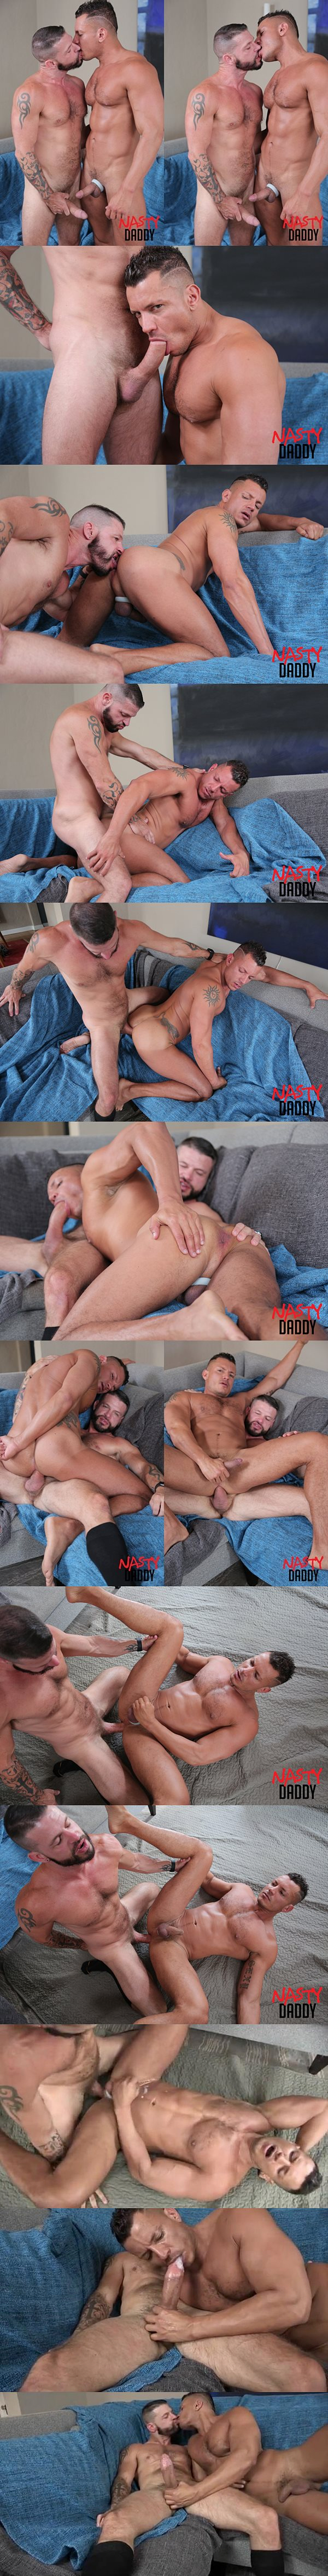 Hung macho hunk Tex Davidson barebacks Angelo Marconi at Nastydaddy 02